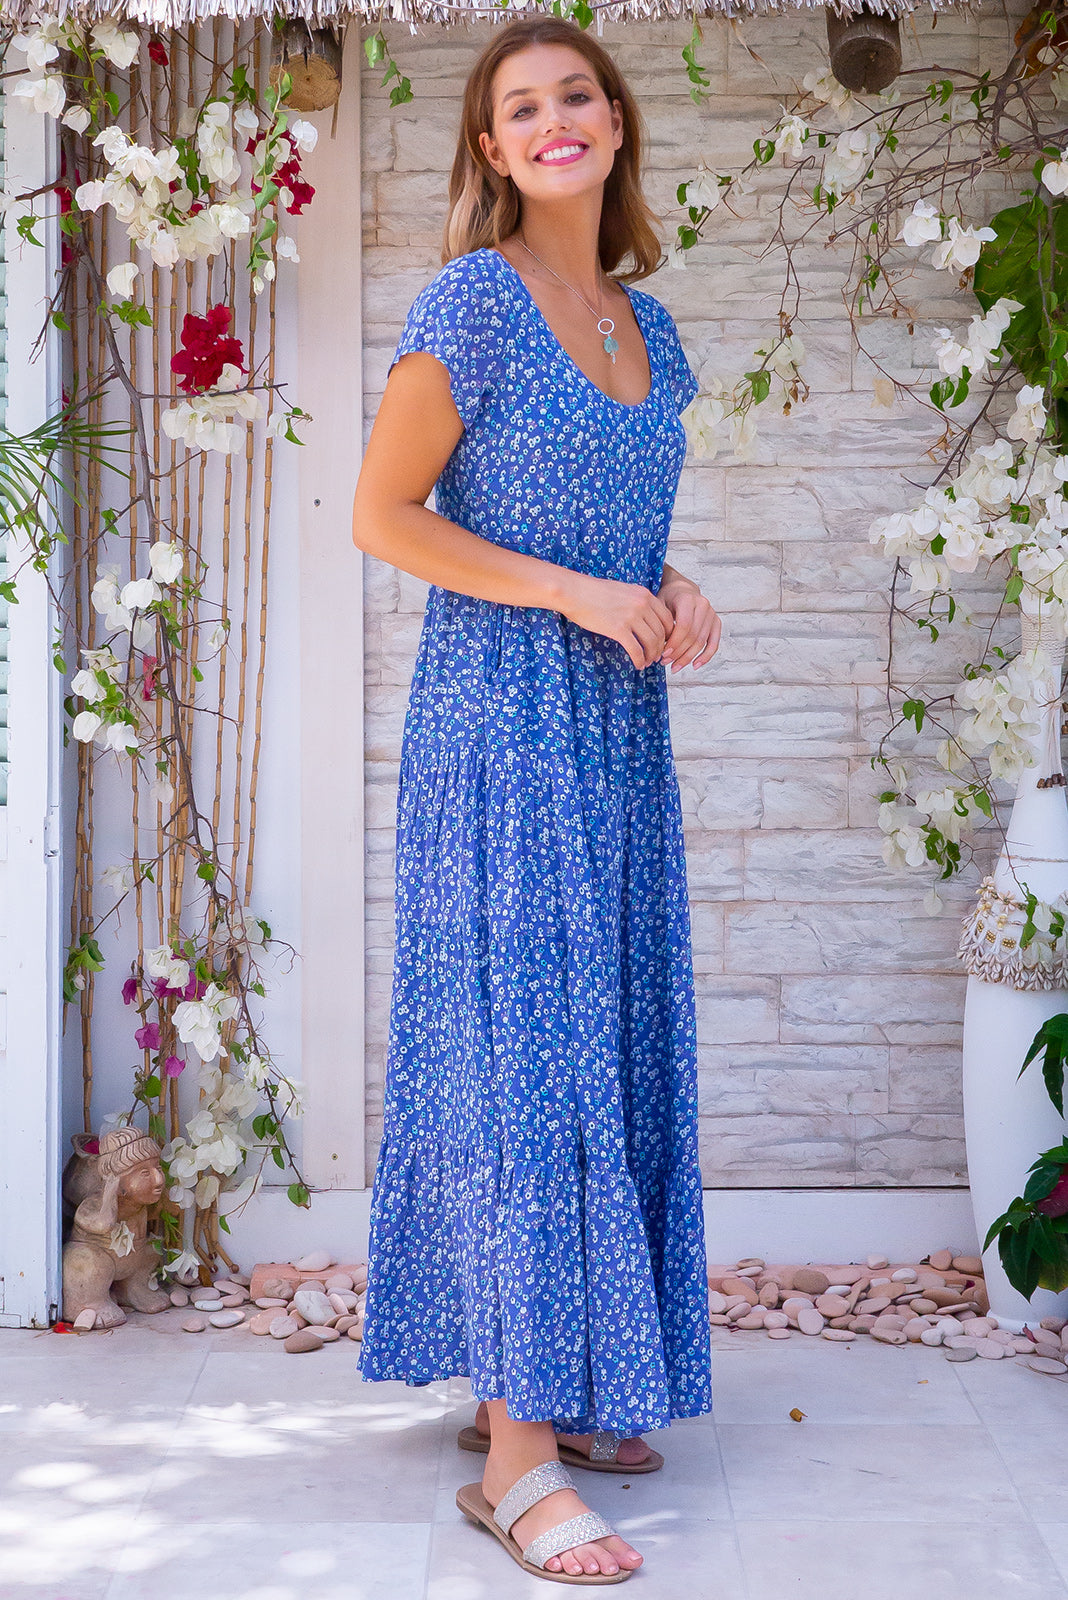 Celeste Skies Maxi Dress, bohemian summer style, 100% rayon, scoop neckline, capped sleeves, three tiered skirt, side pockets, bright blue base with small white and blue floral print.